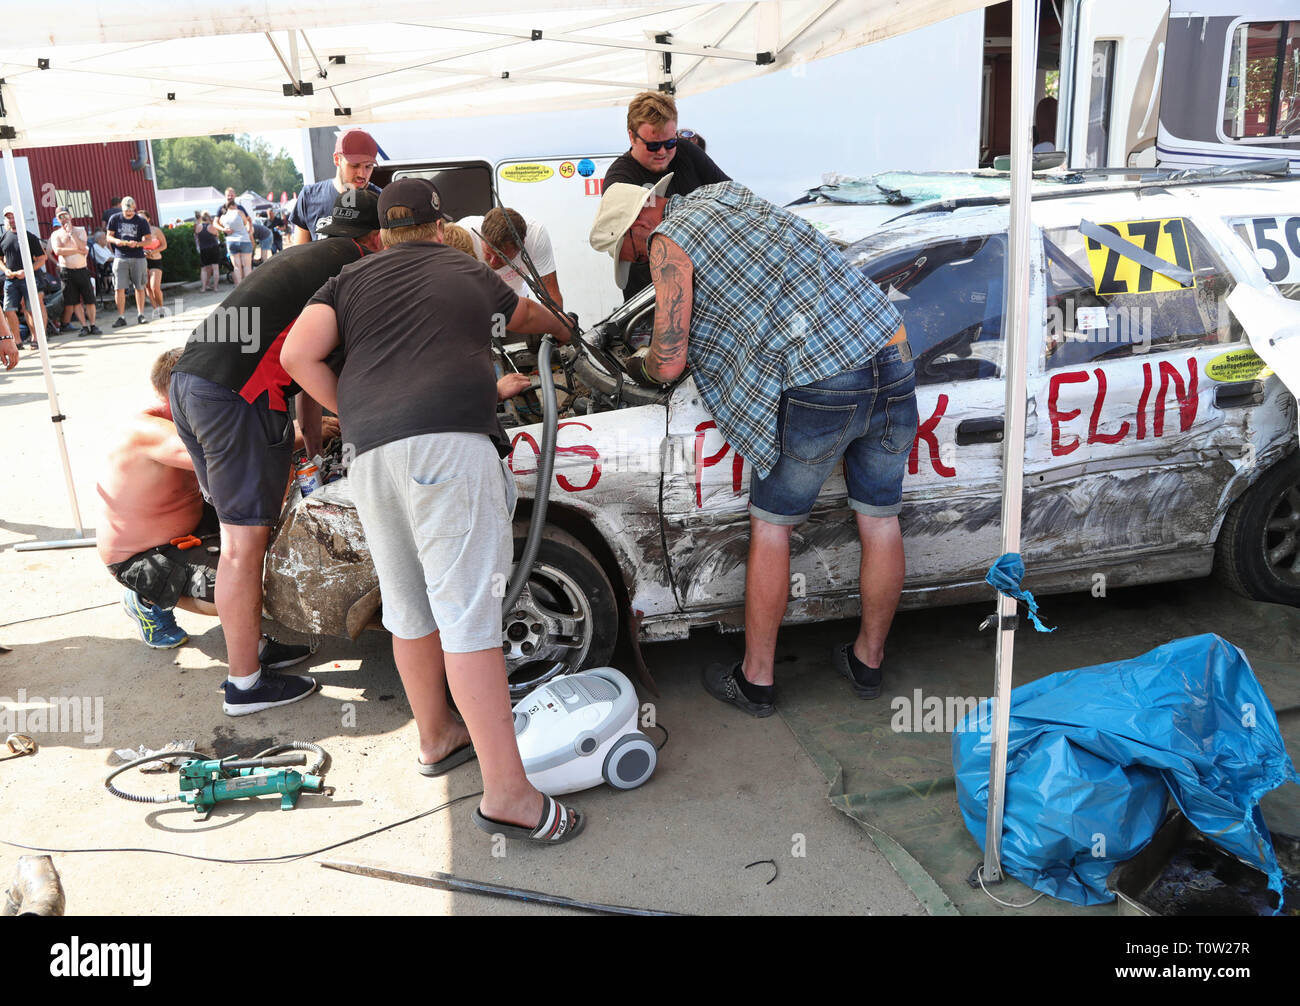 Motala, Sweden, 'Folkracefestivalen' participants in upcoming race. Folk racing or Folkrace is a popular, inexpensive, and entry-level form of Nordic rallycross Photo Jeppe Gustafsson - Stock Image